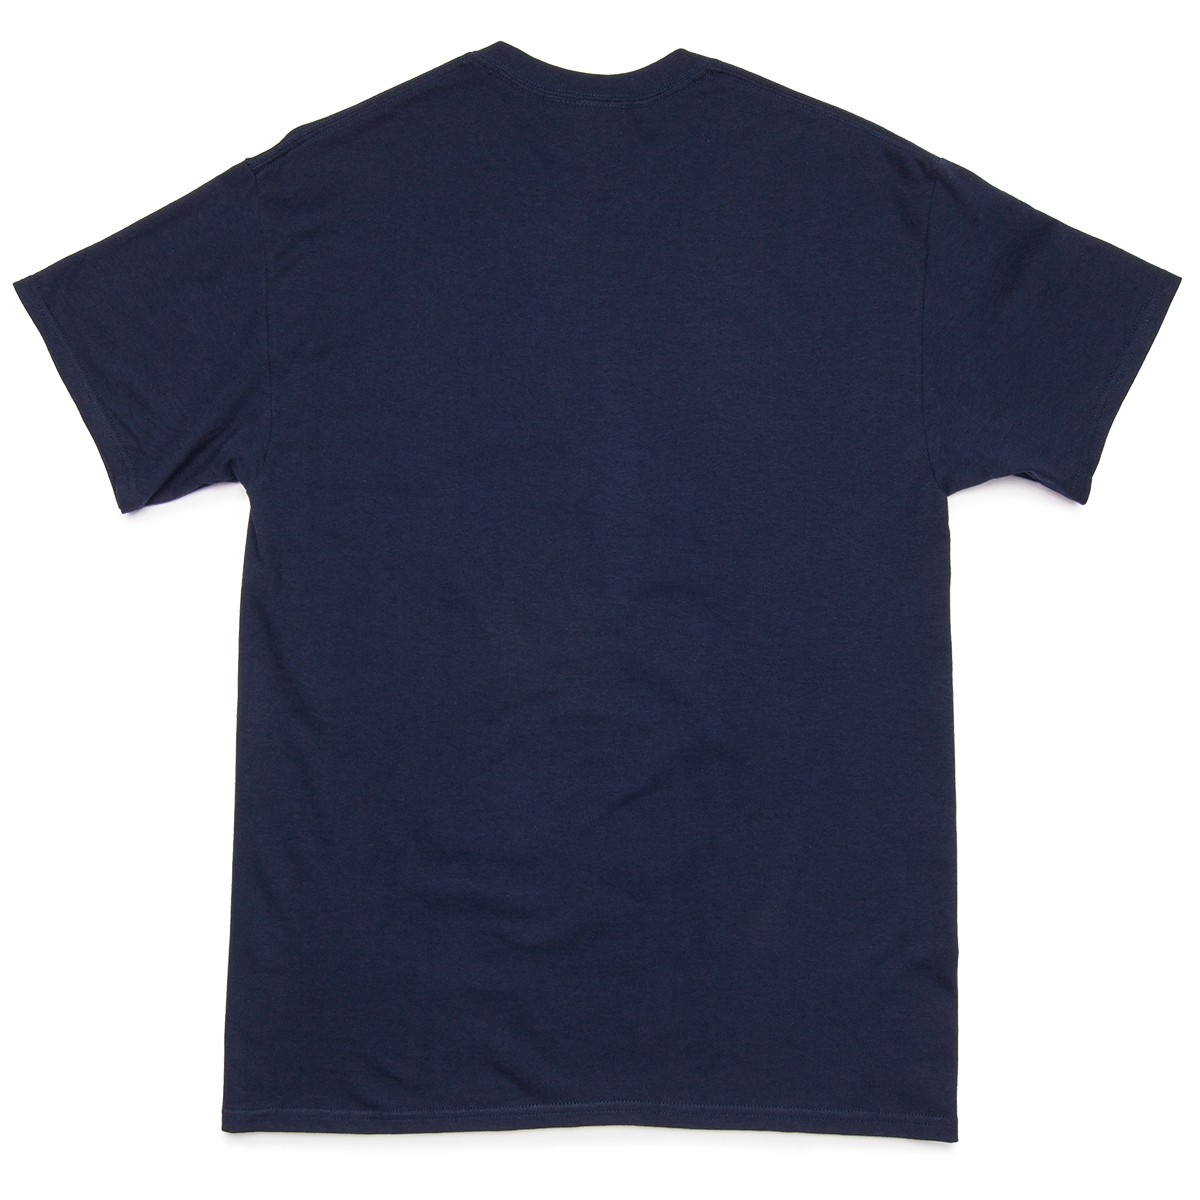 Navy Gear offers the widest variety of US Navy T shirts for men. Choose from a large range of navy graphics, bold designs and color combinations so you can proudly display your navy pride in a way that matches your particular style and personality.